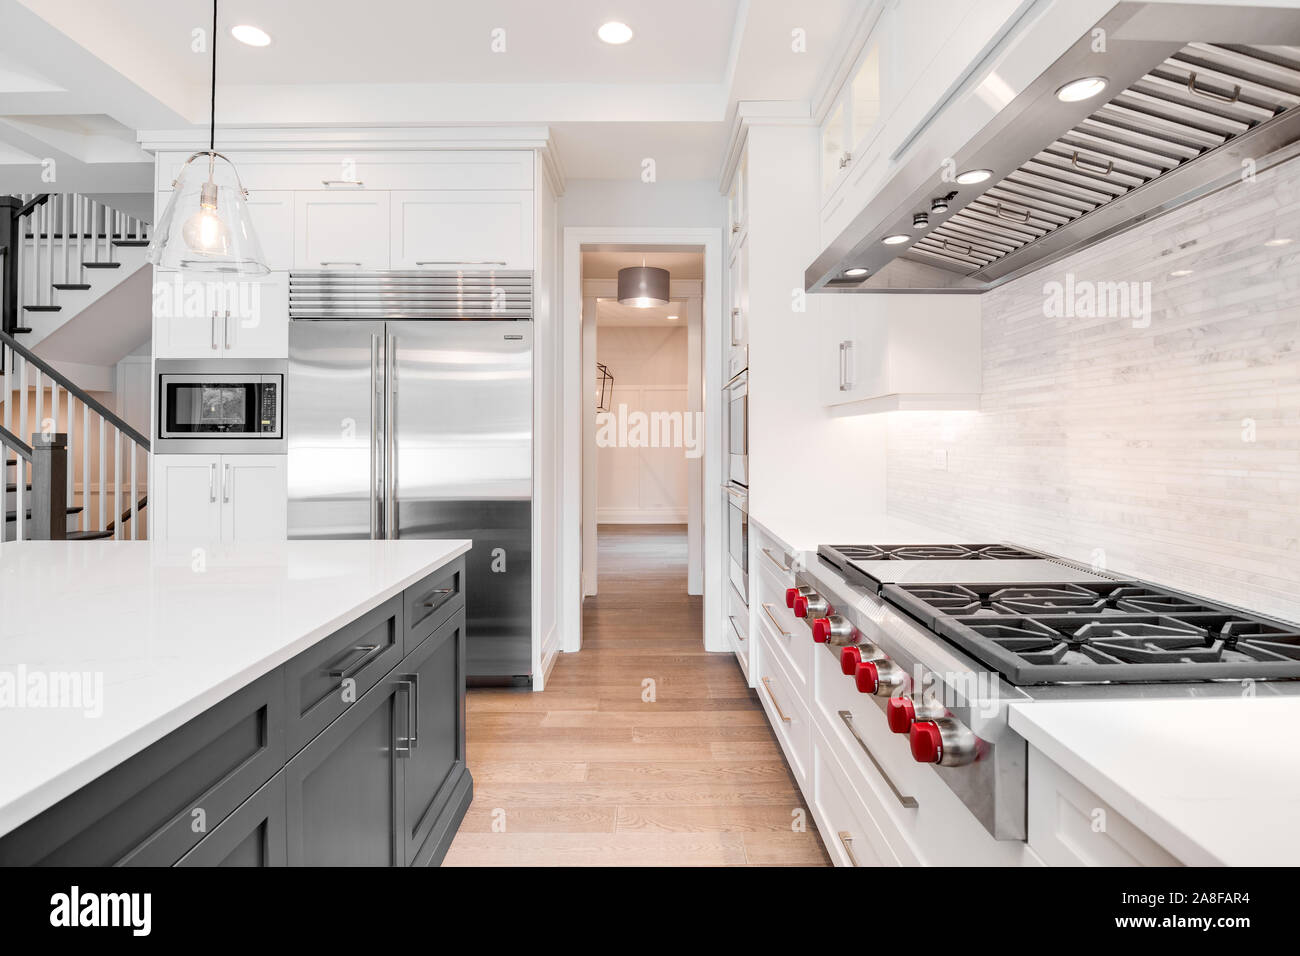 A luxurious modern kitchen with stainless steel Wolf appliances surrounded by white cabinets, beautiful granite, and hardwood floors. Stock Photo